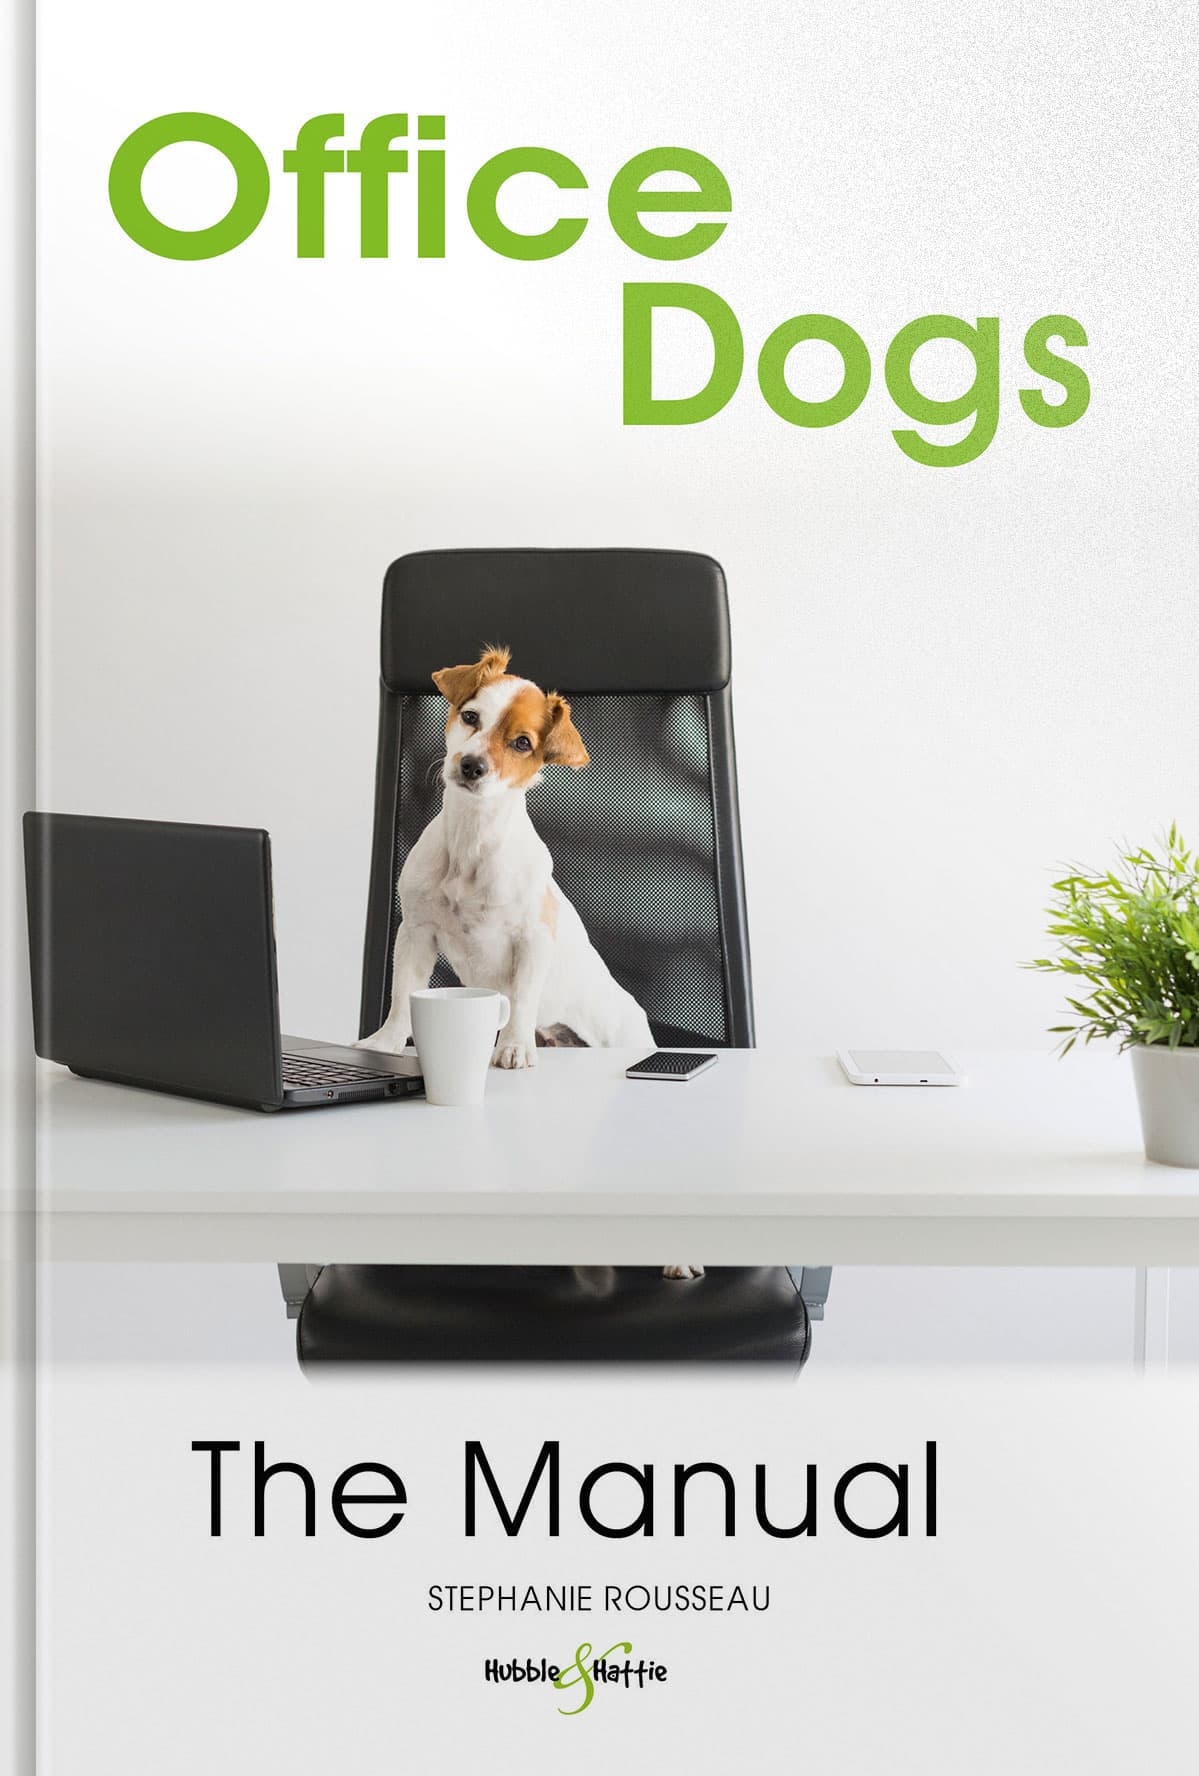 Office dogs – The Manual